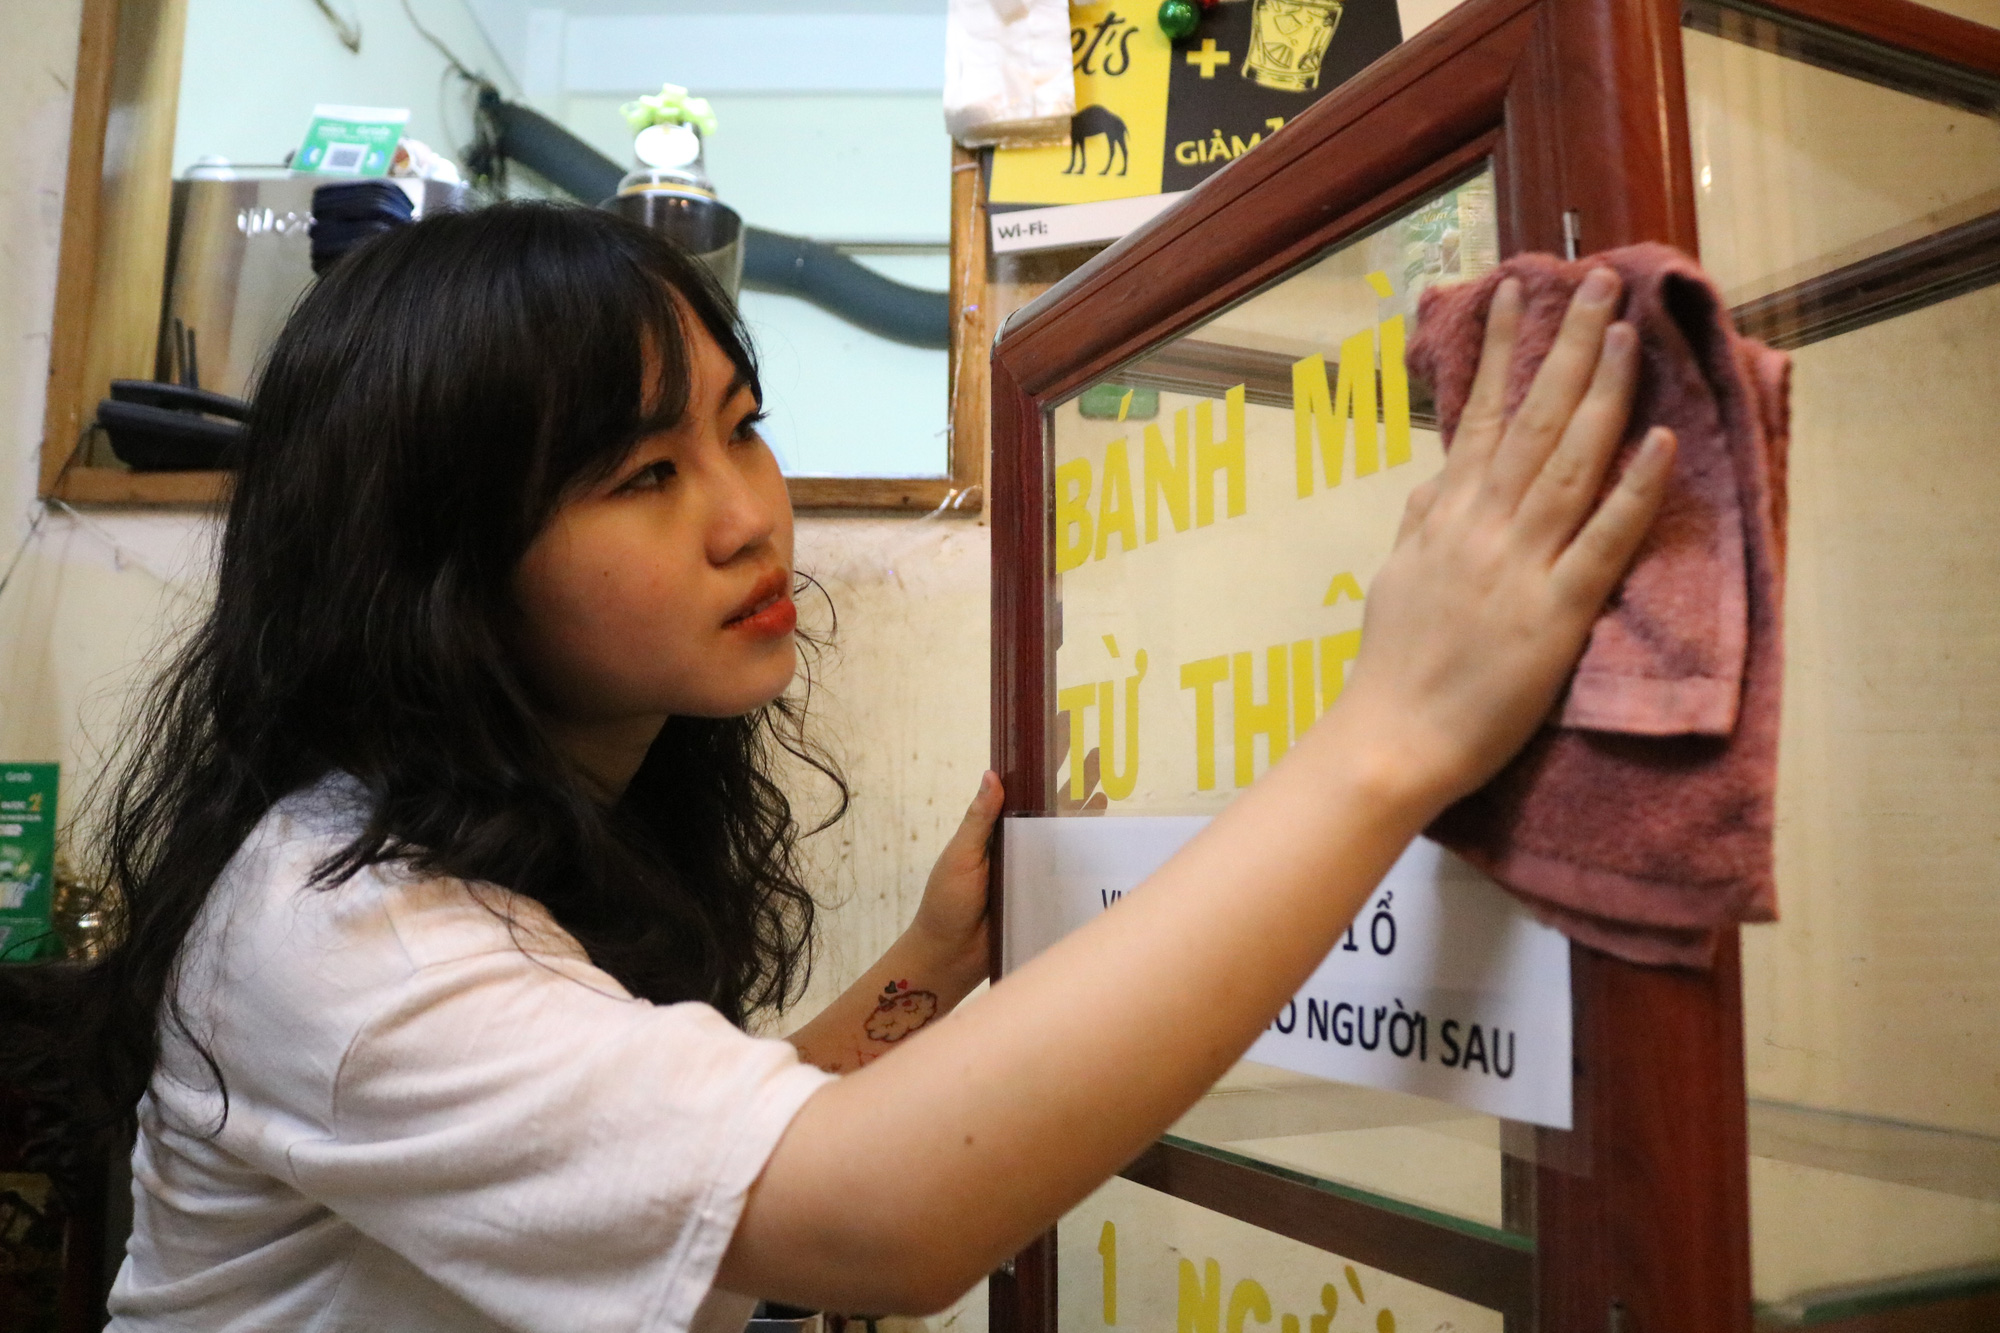 College student Nguyen Thi My Dung cleans a container which she uses to store free bread for those in need in Ho Chi Minh City. Photo: Ngoc Phuong / Tuoi Tre